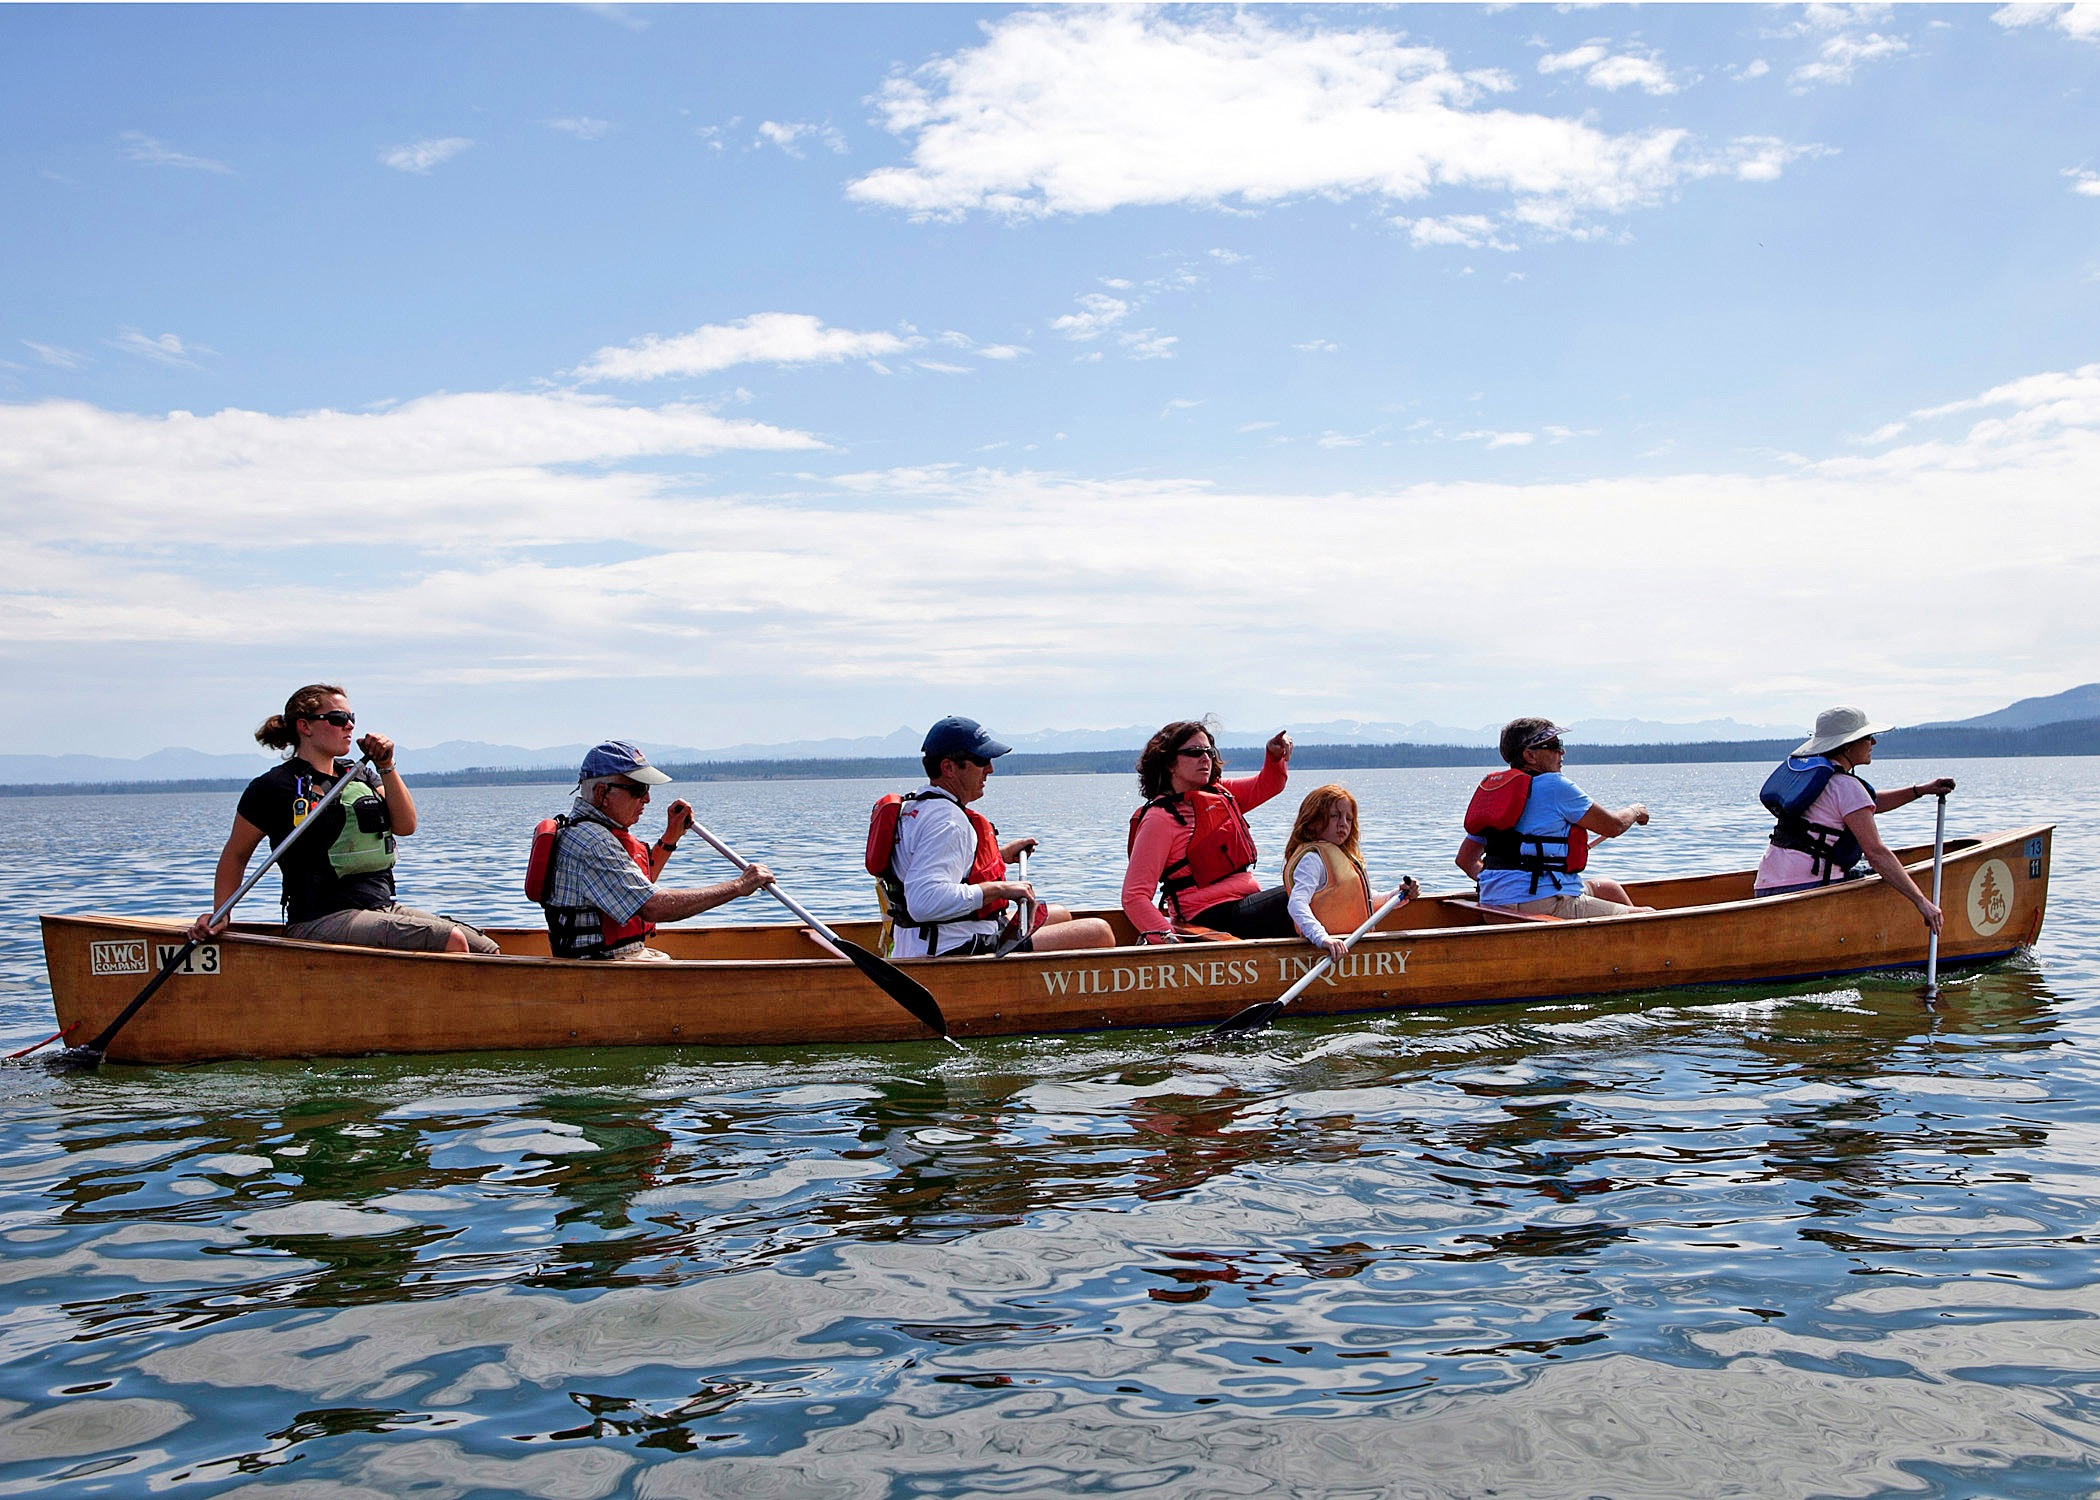 a group of 7 canoes on Yellowstone Lake while enjoying the sunny day